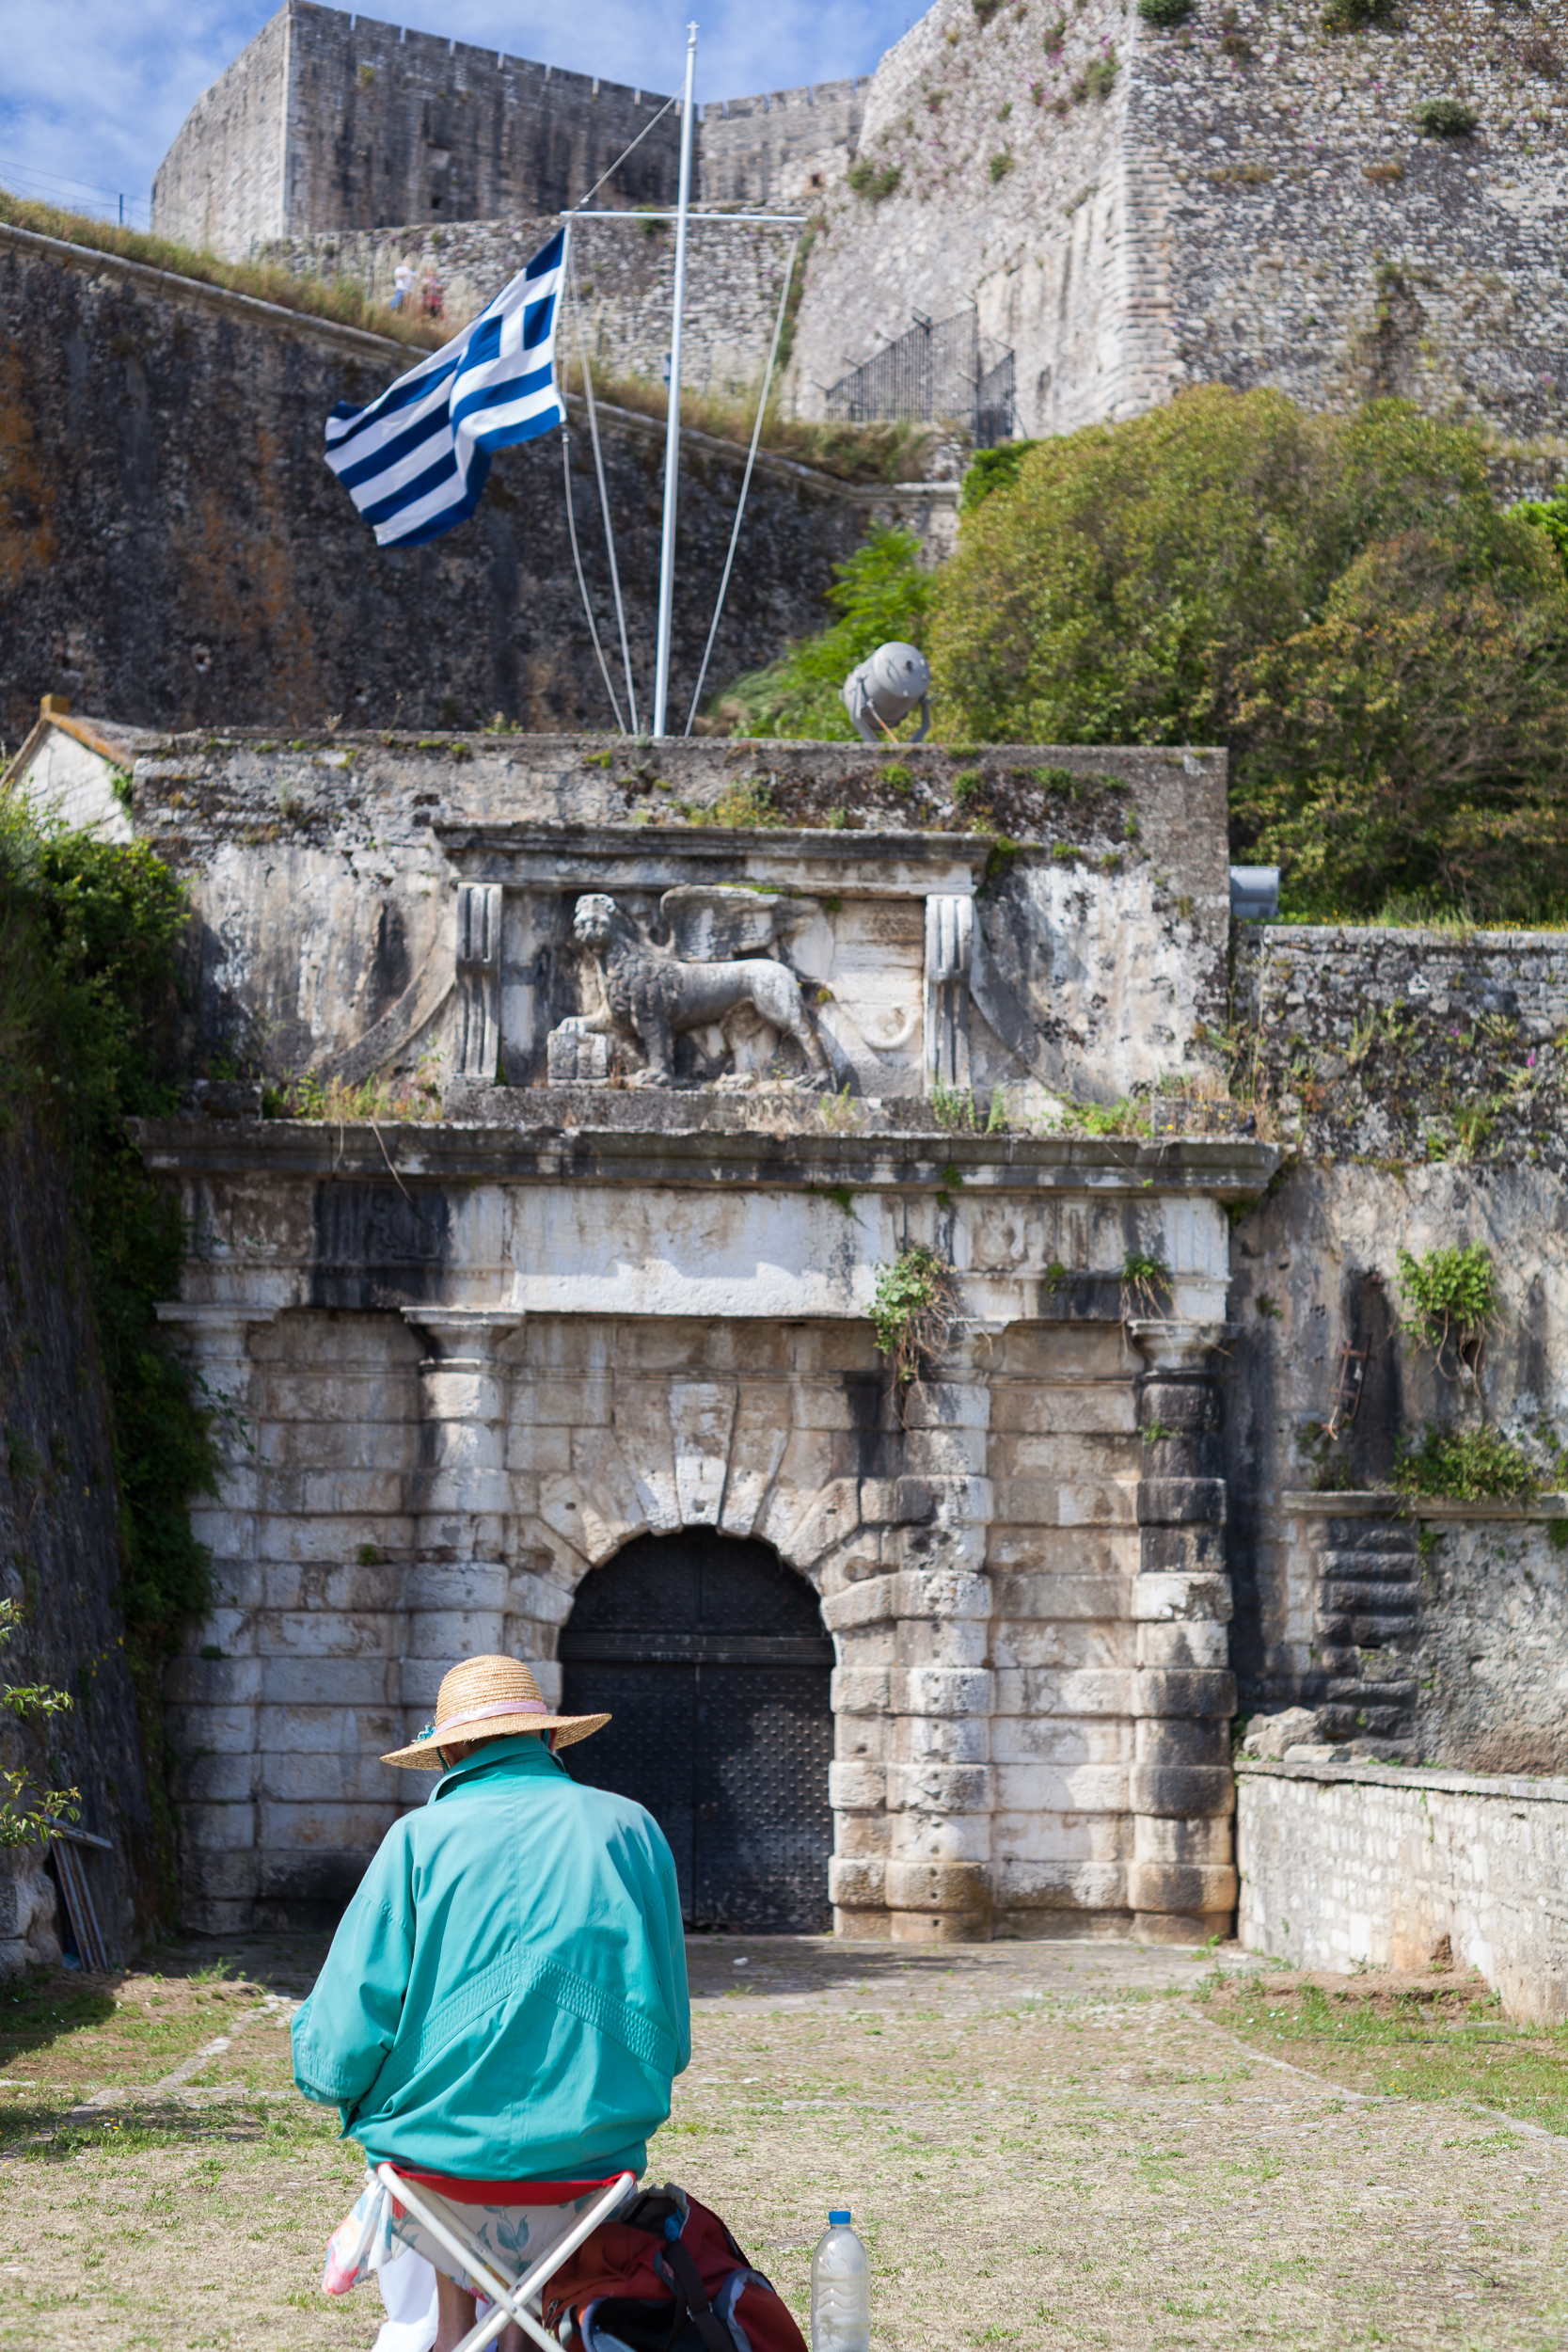 Chacon Images_Greece_Travel_WEB_-4515.jpg